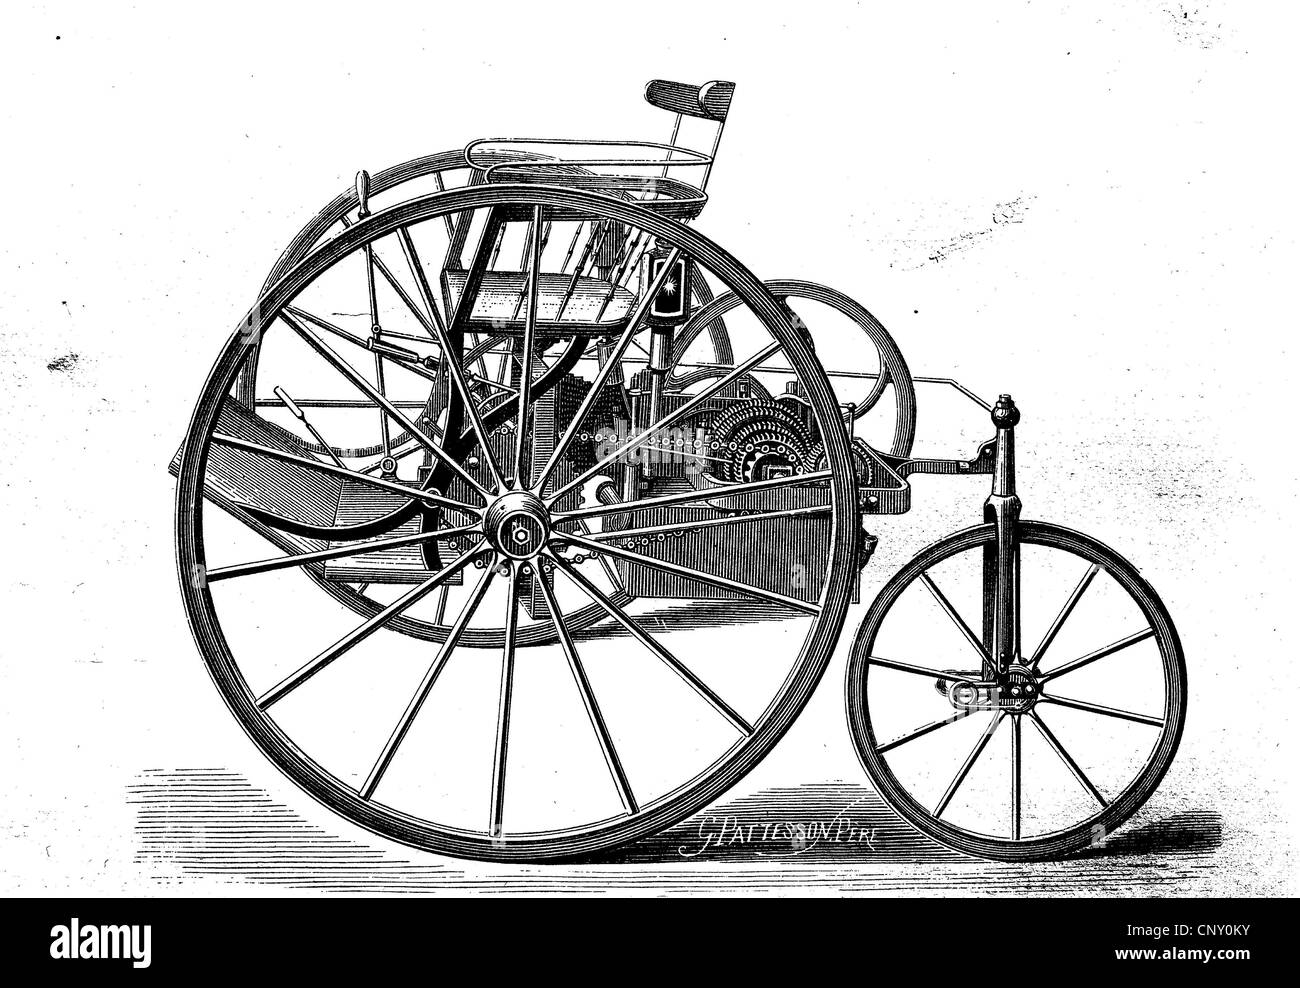 Draft Tricycle by William Ayrton and John Perry, about 1880, the first electric car - Stock Image